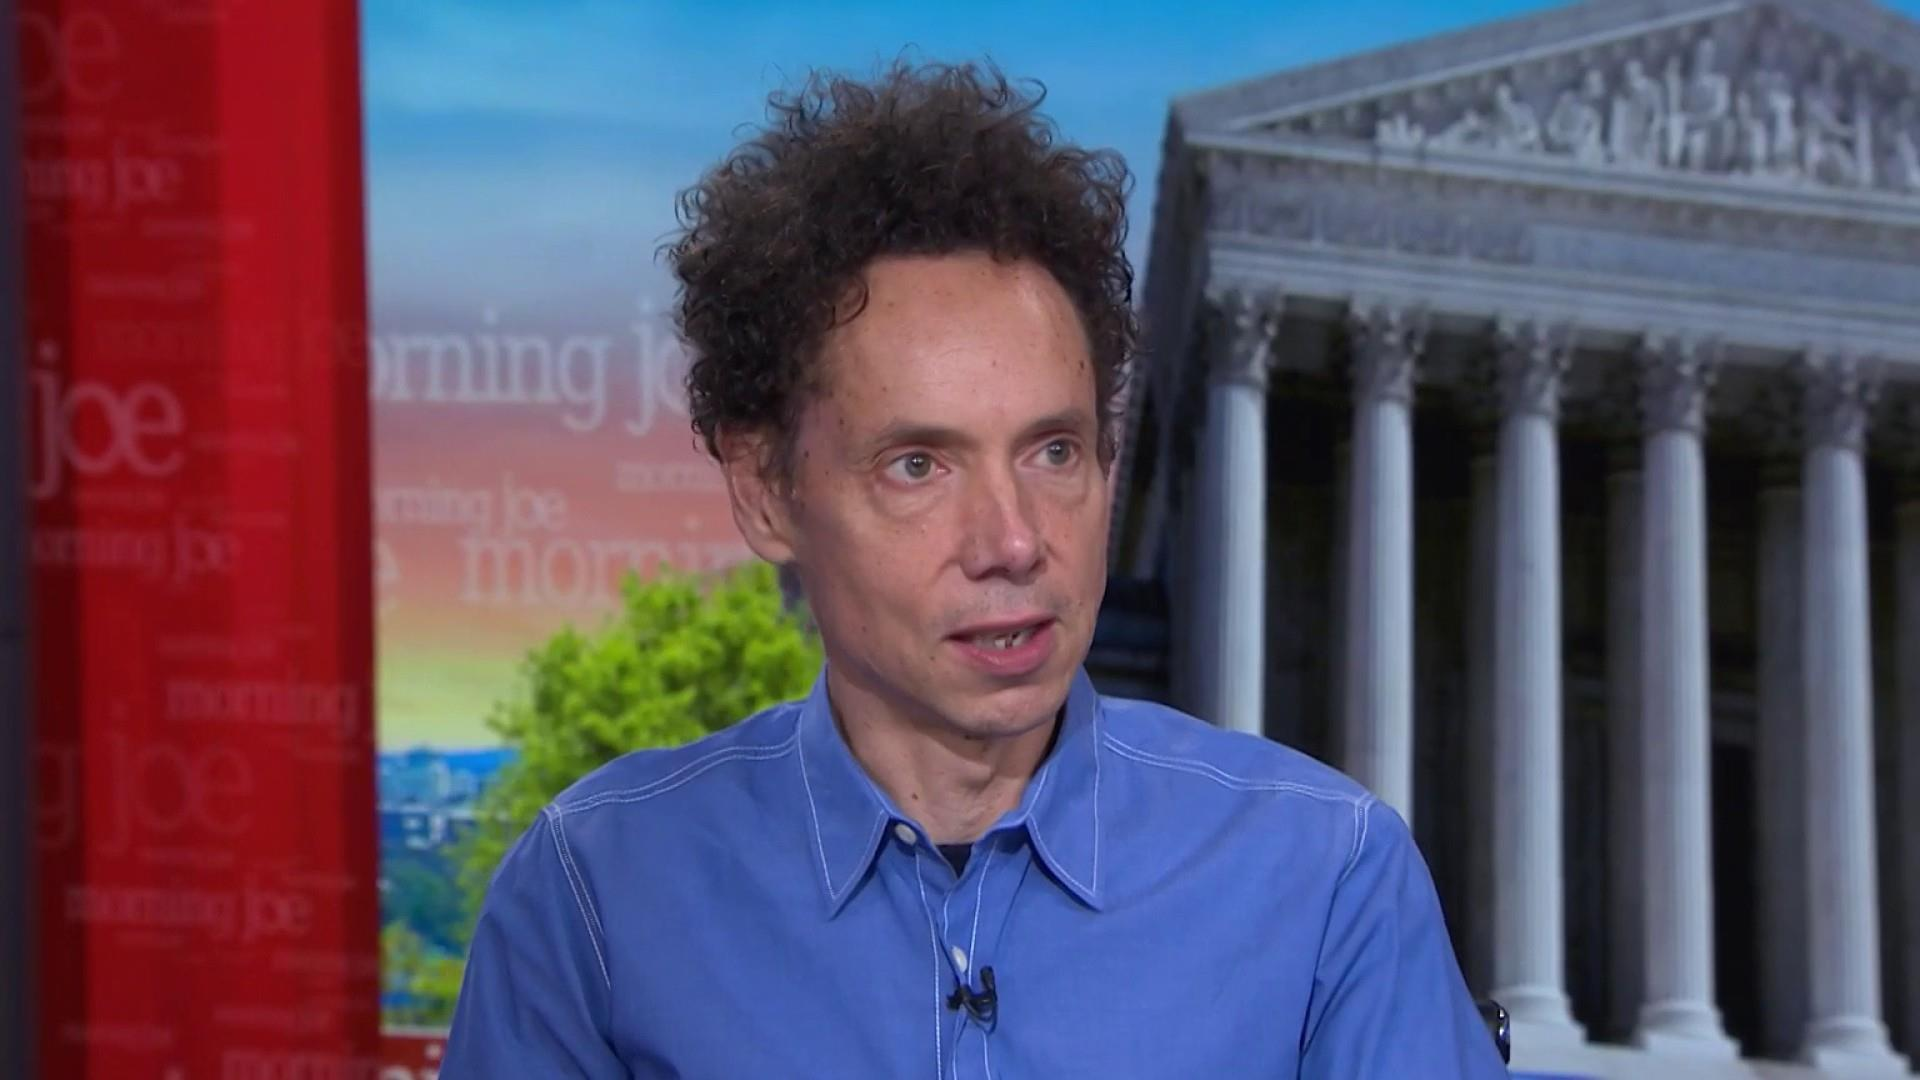 Malcolm Gladwell gives the Boston Tea Party another look